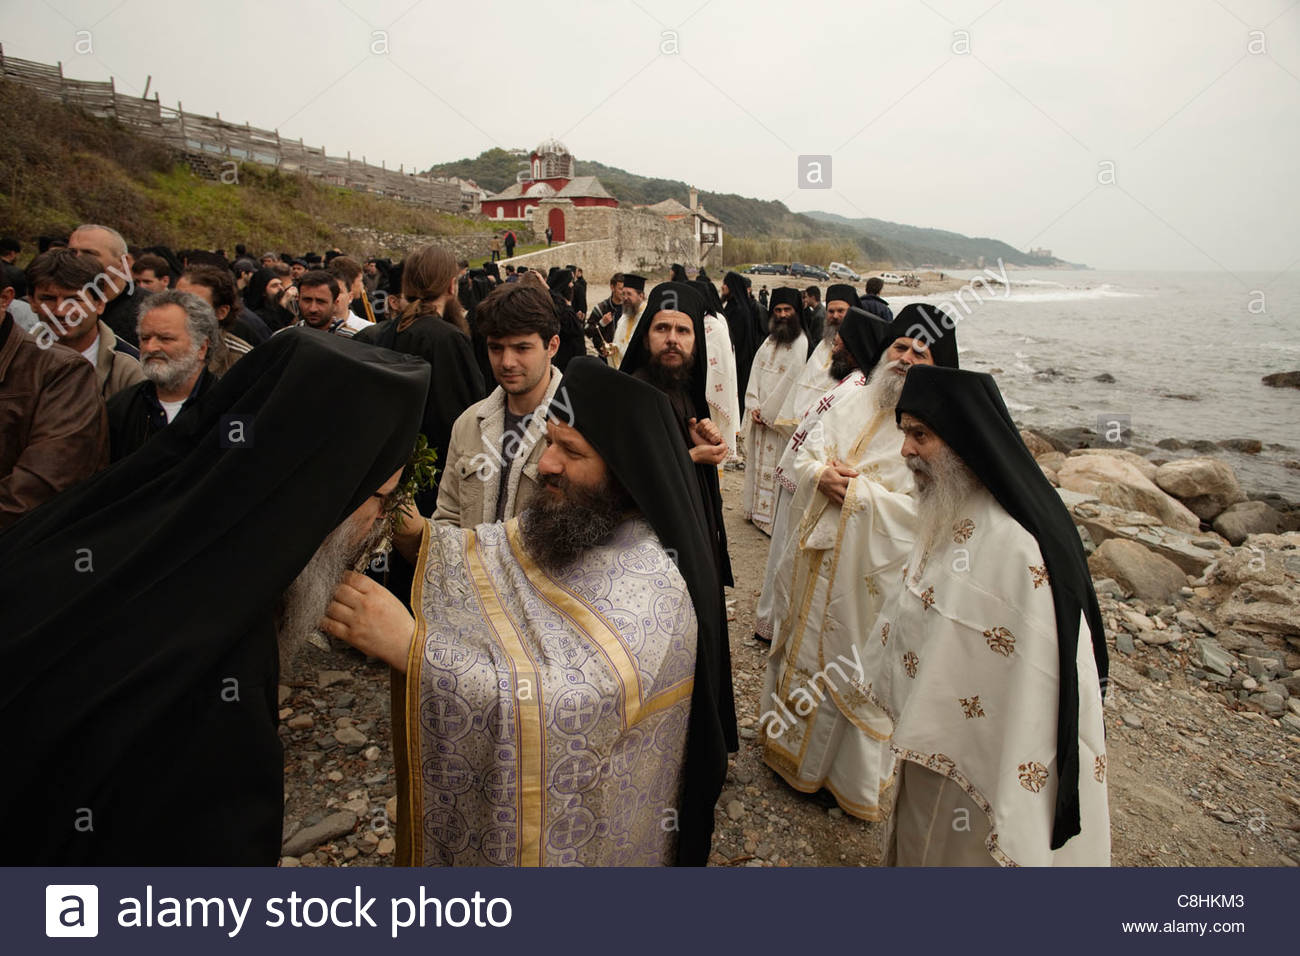 Father David blesses monks with holy water during Portaitissa. - Stock Image